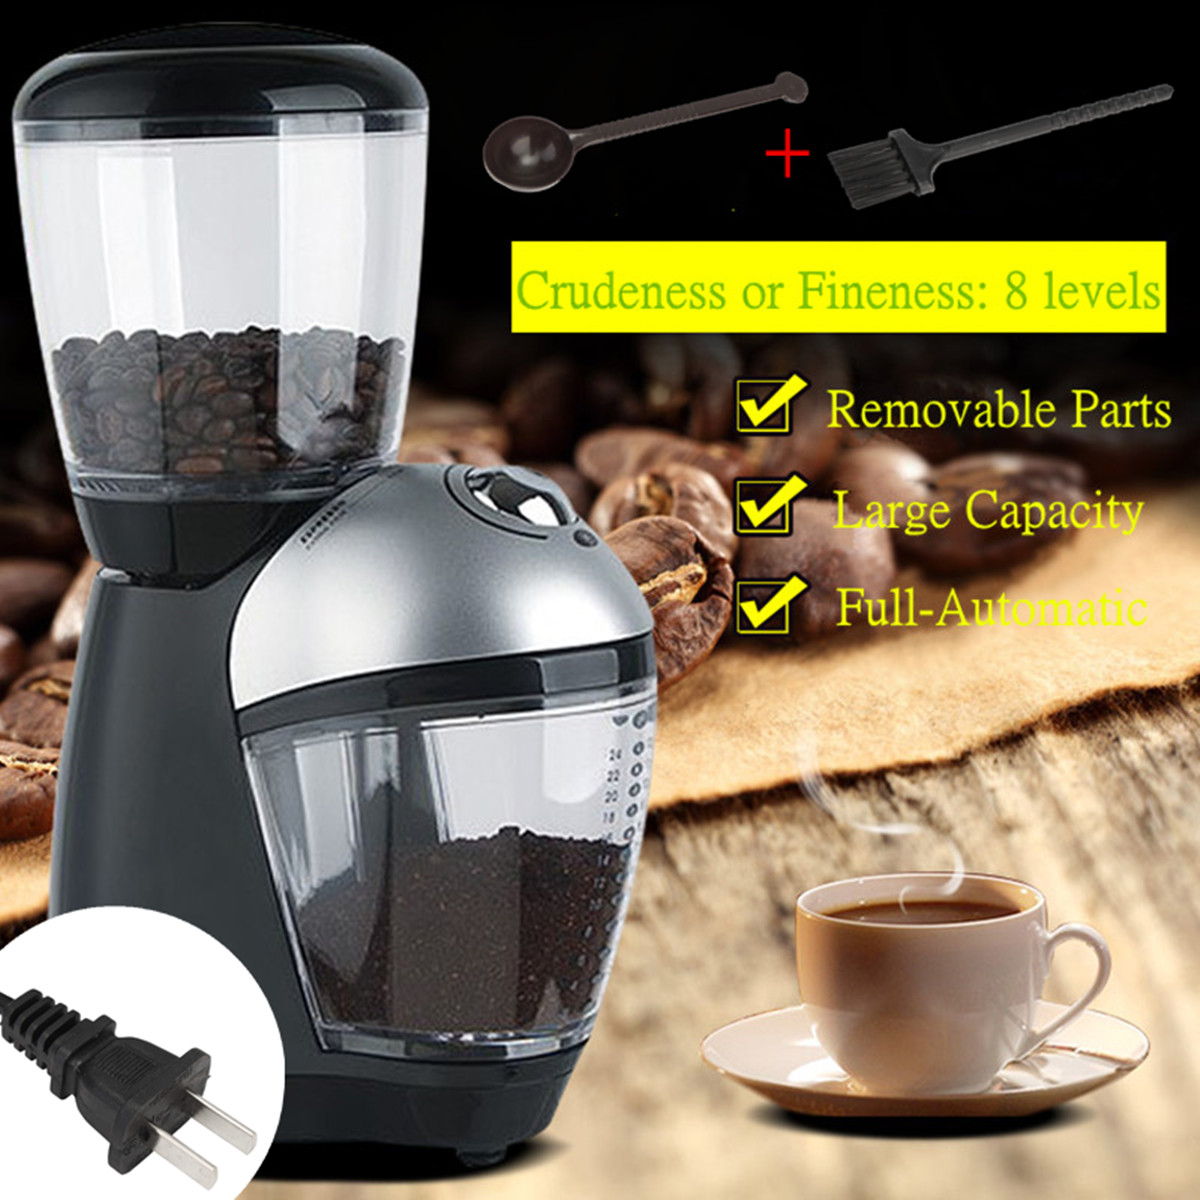 Electric Coffee Grinder Maker Small Electric Flour Mill Dry Grain Grinding Machine Mechanical Control US Plug Home Office